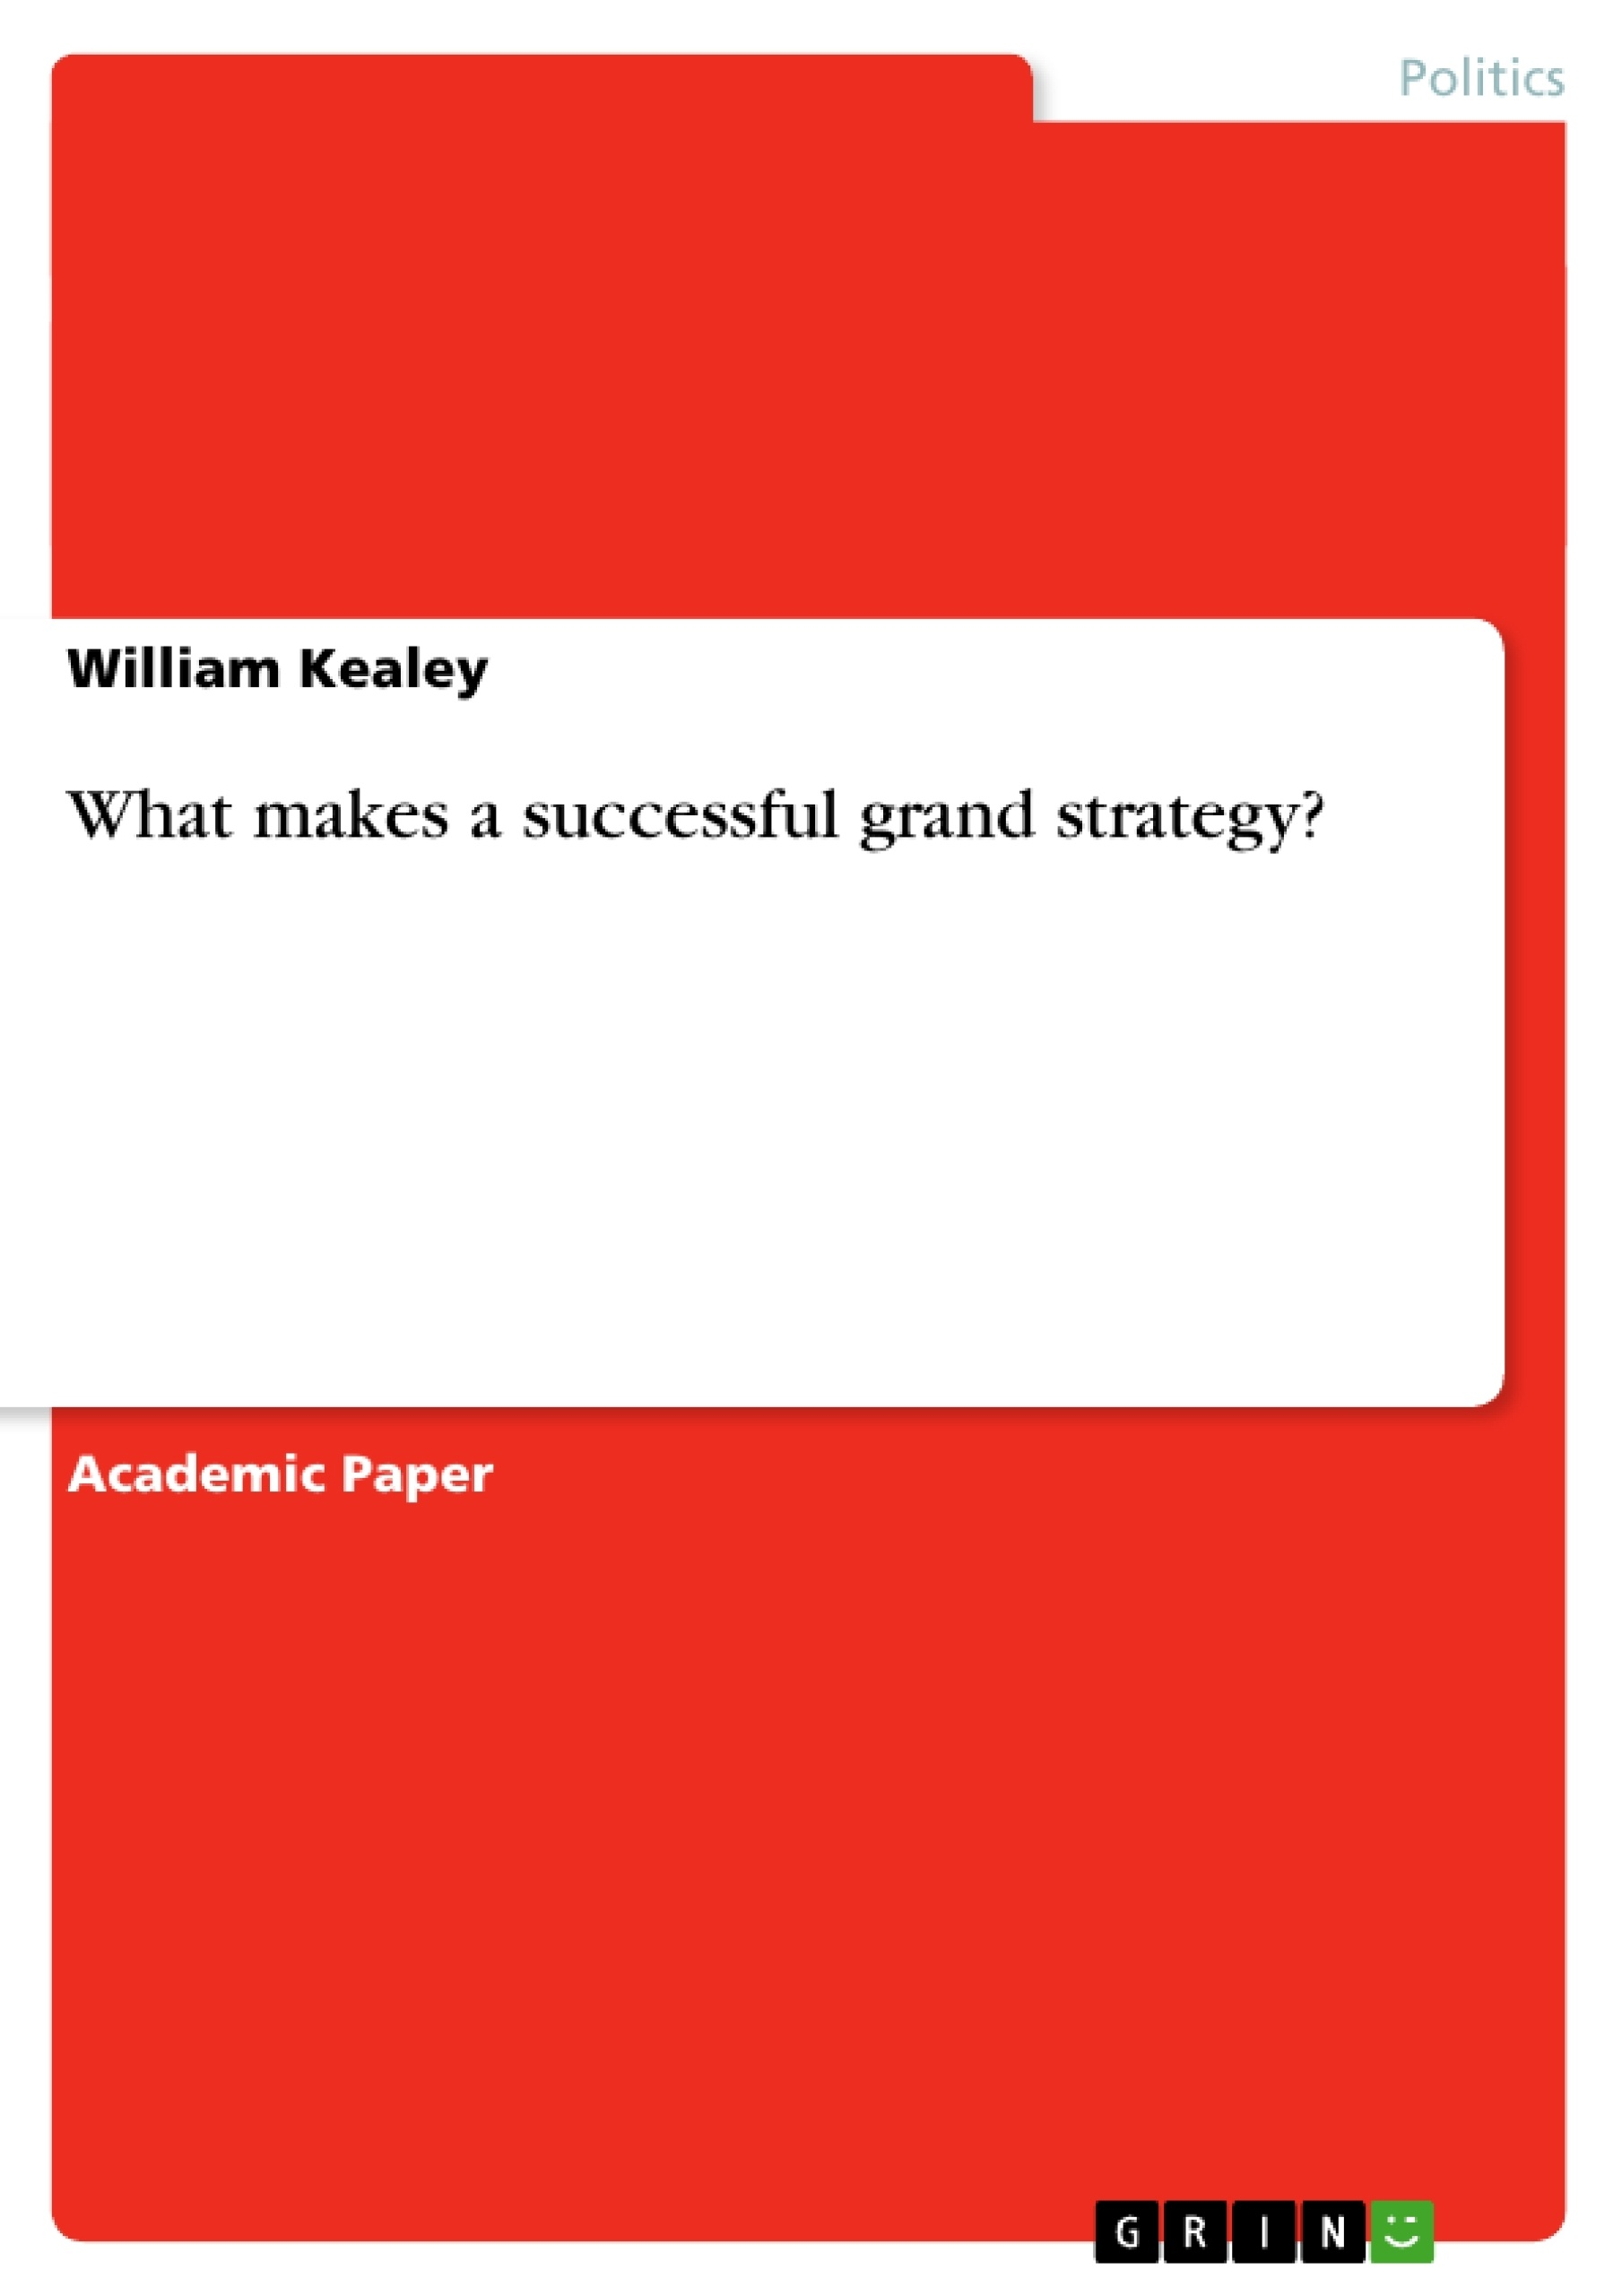 Title: What makes a successful grand strategy?